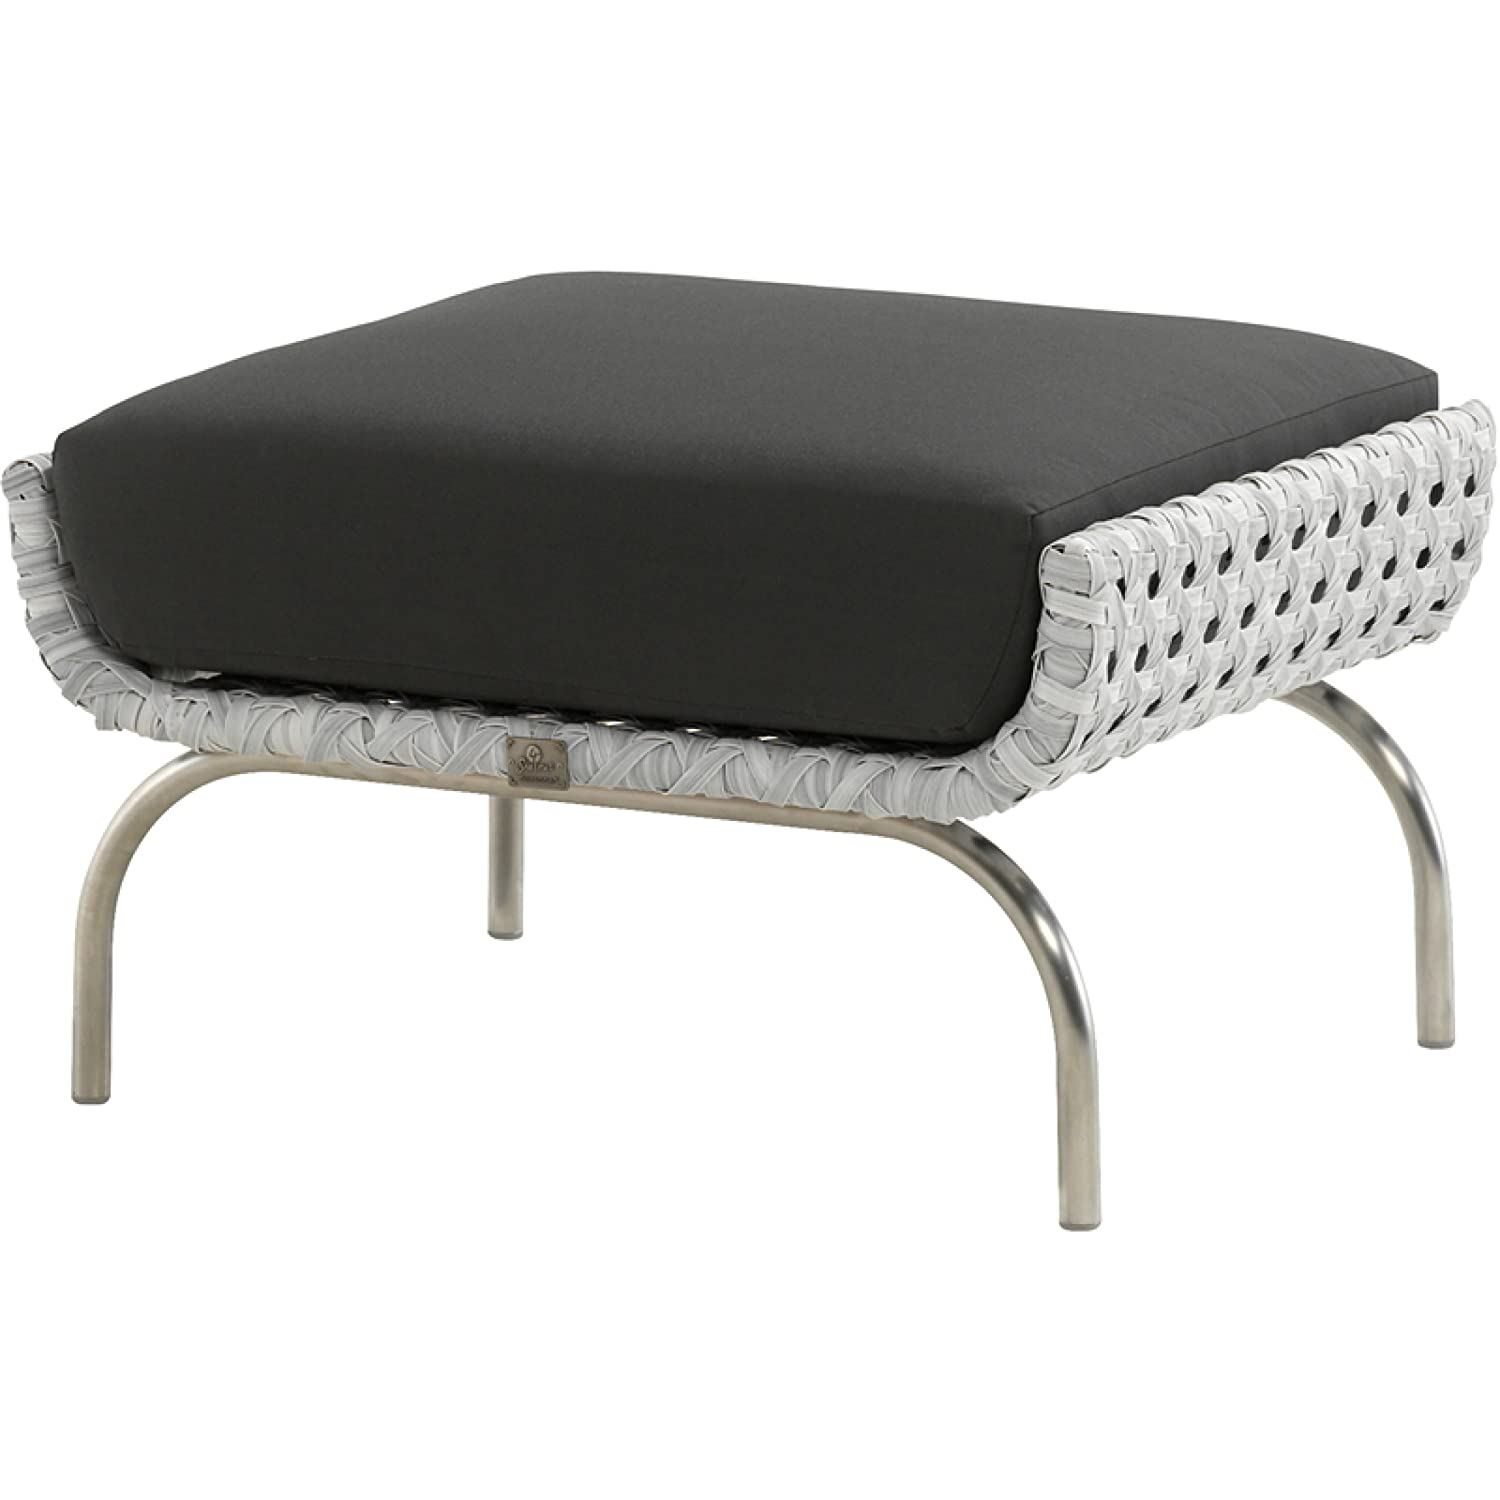 4Seasons Outdoor Luton Fußhocker Polyrattan pearl